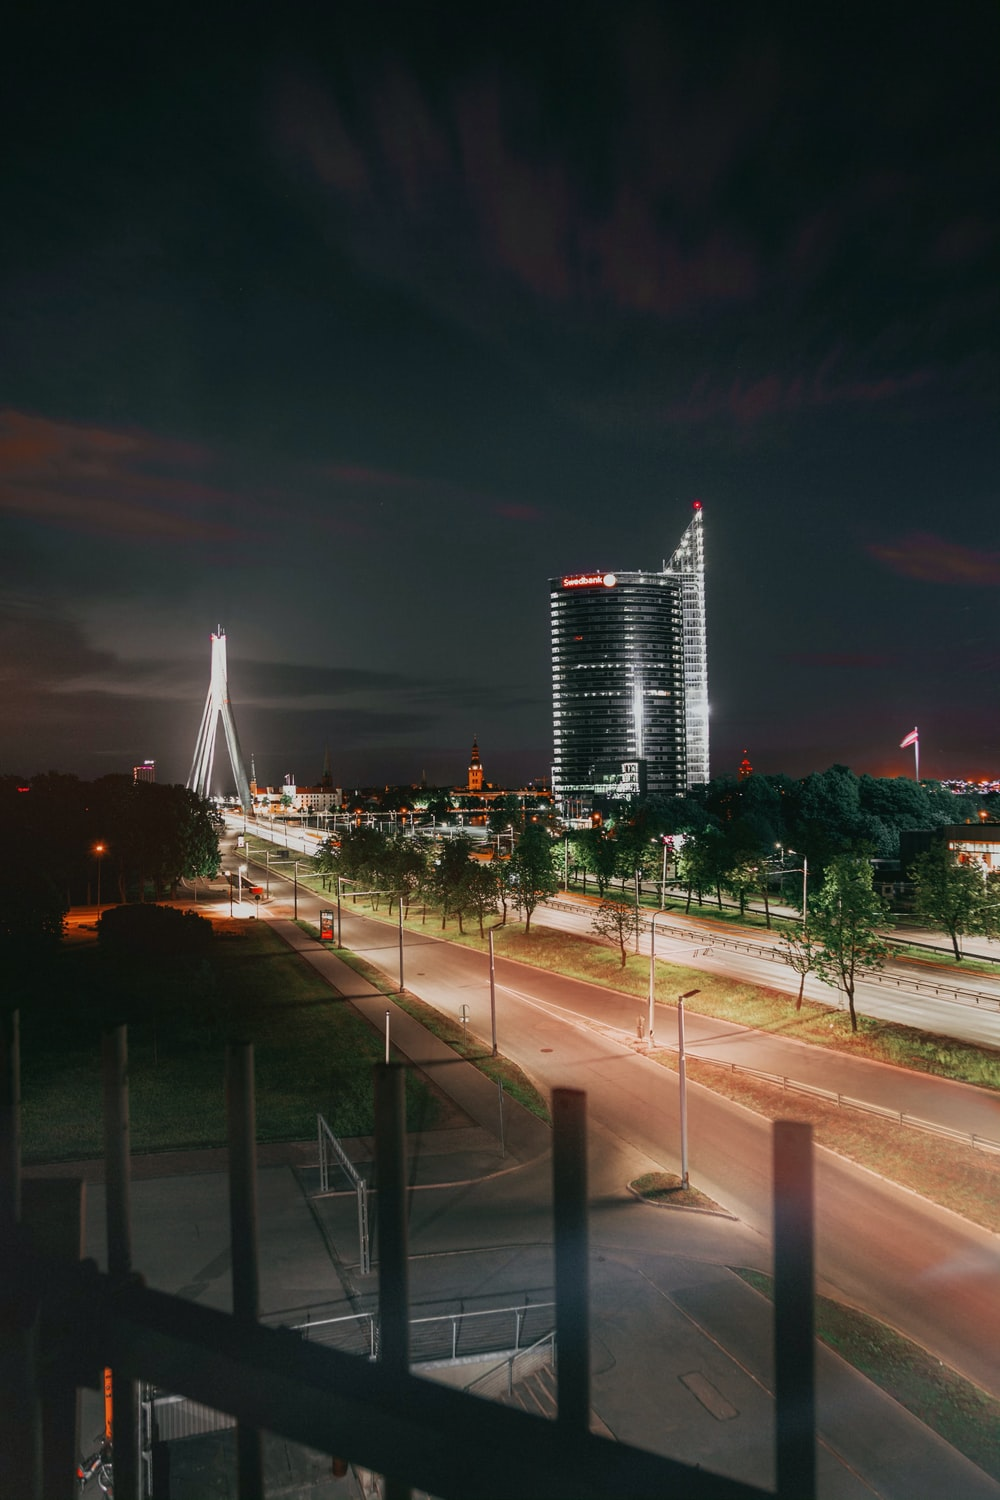 time lapse photo of city during nighttime